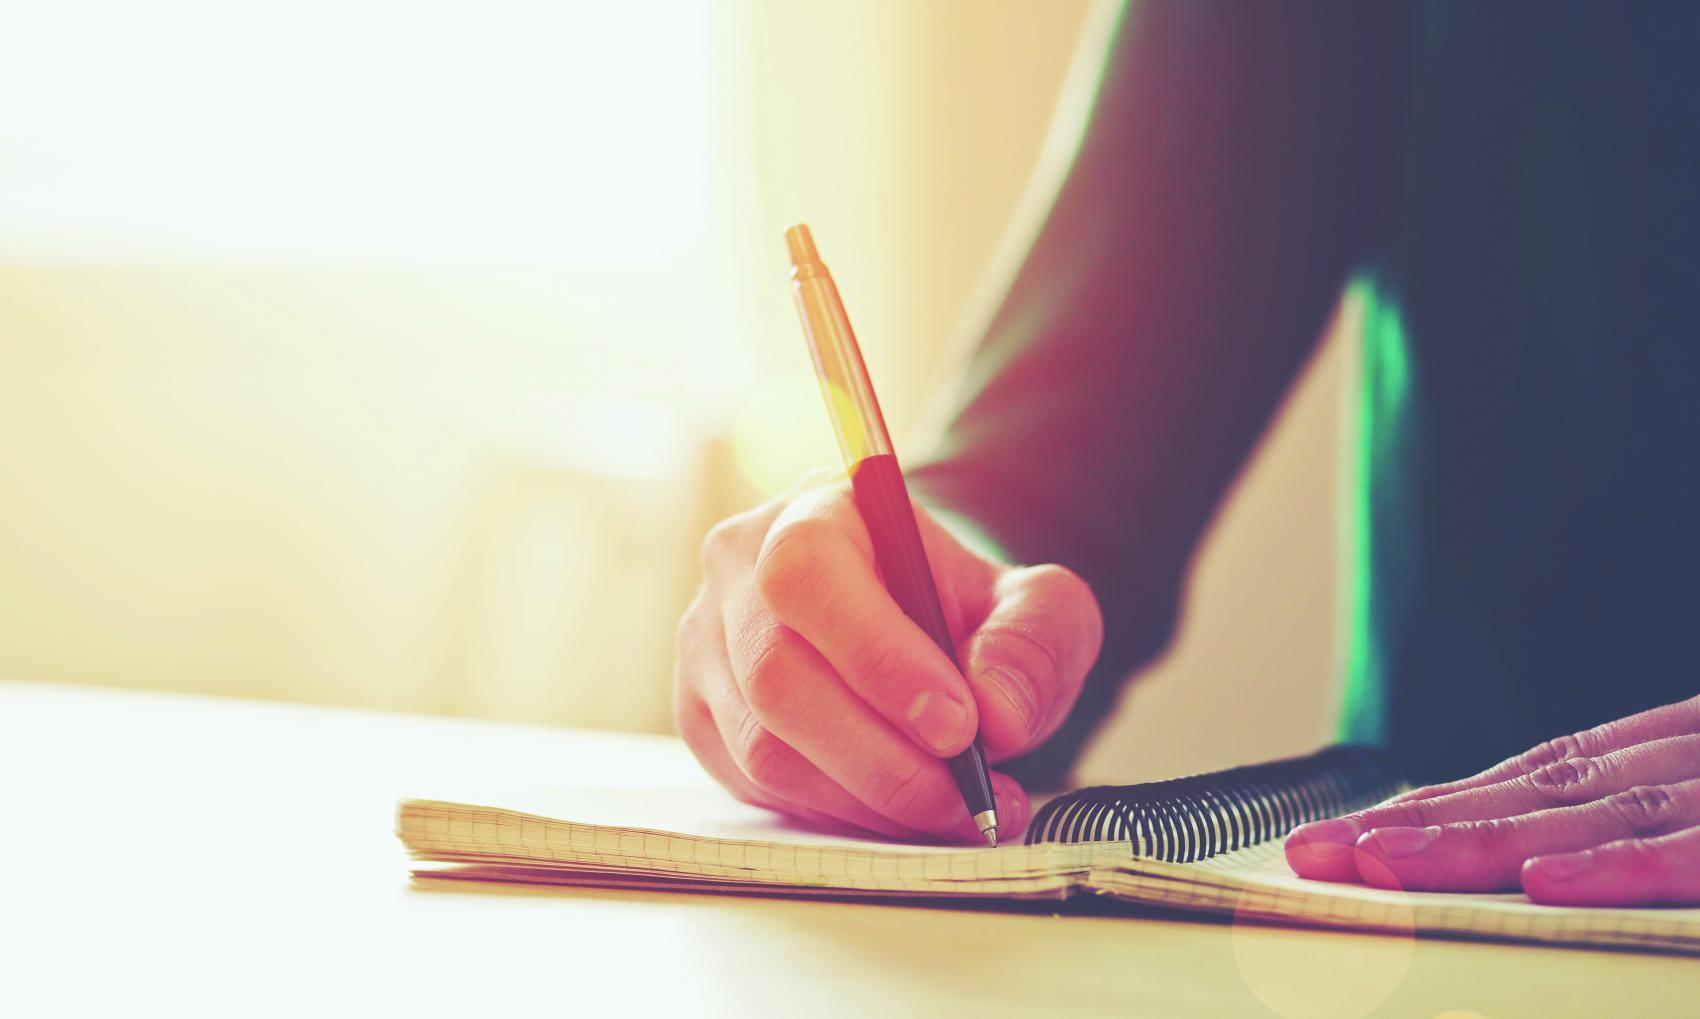 Hand writing in a notebook with a pen